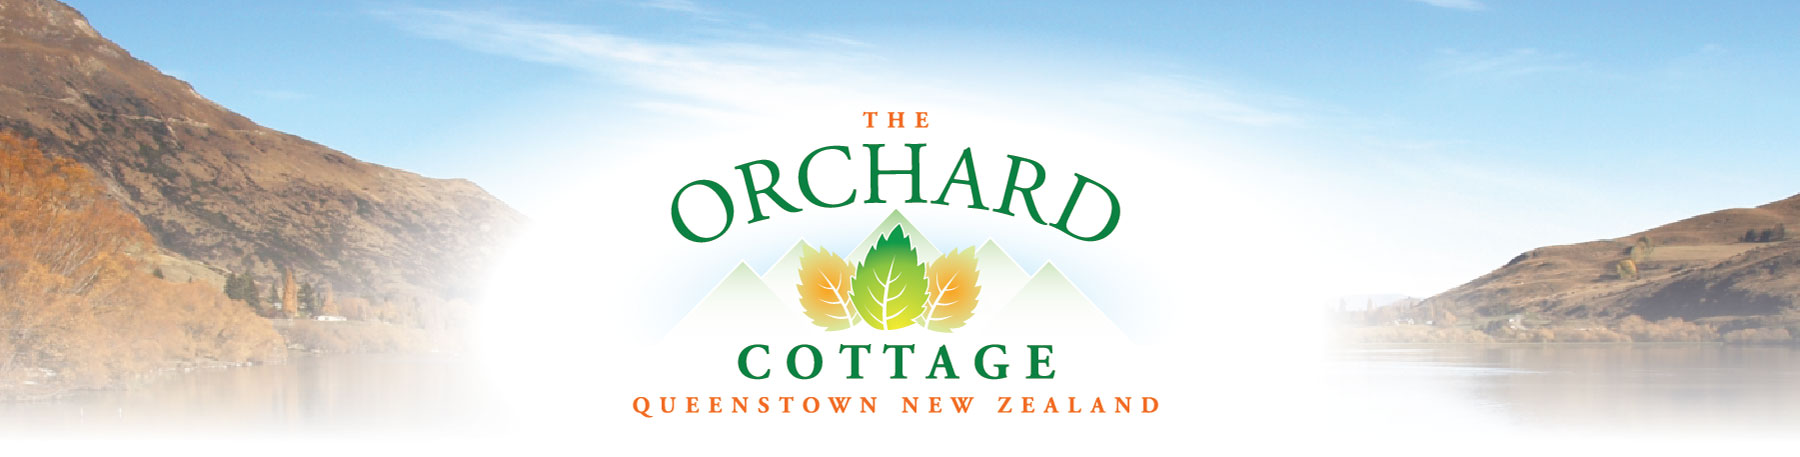 orchard-cottage-logo